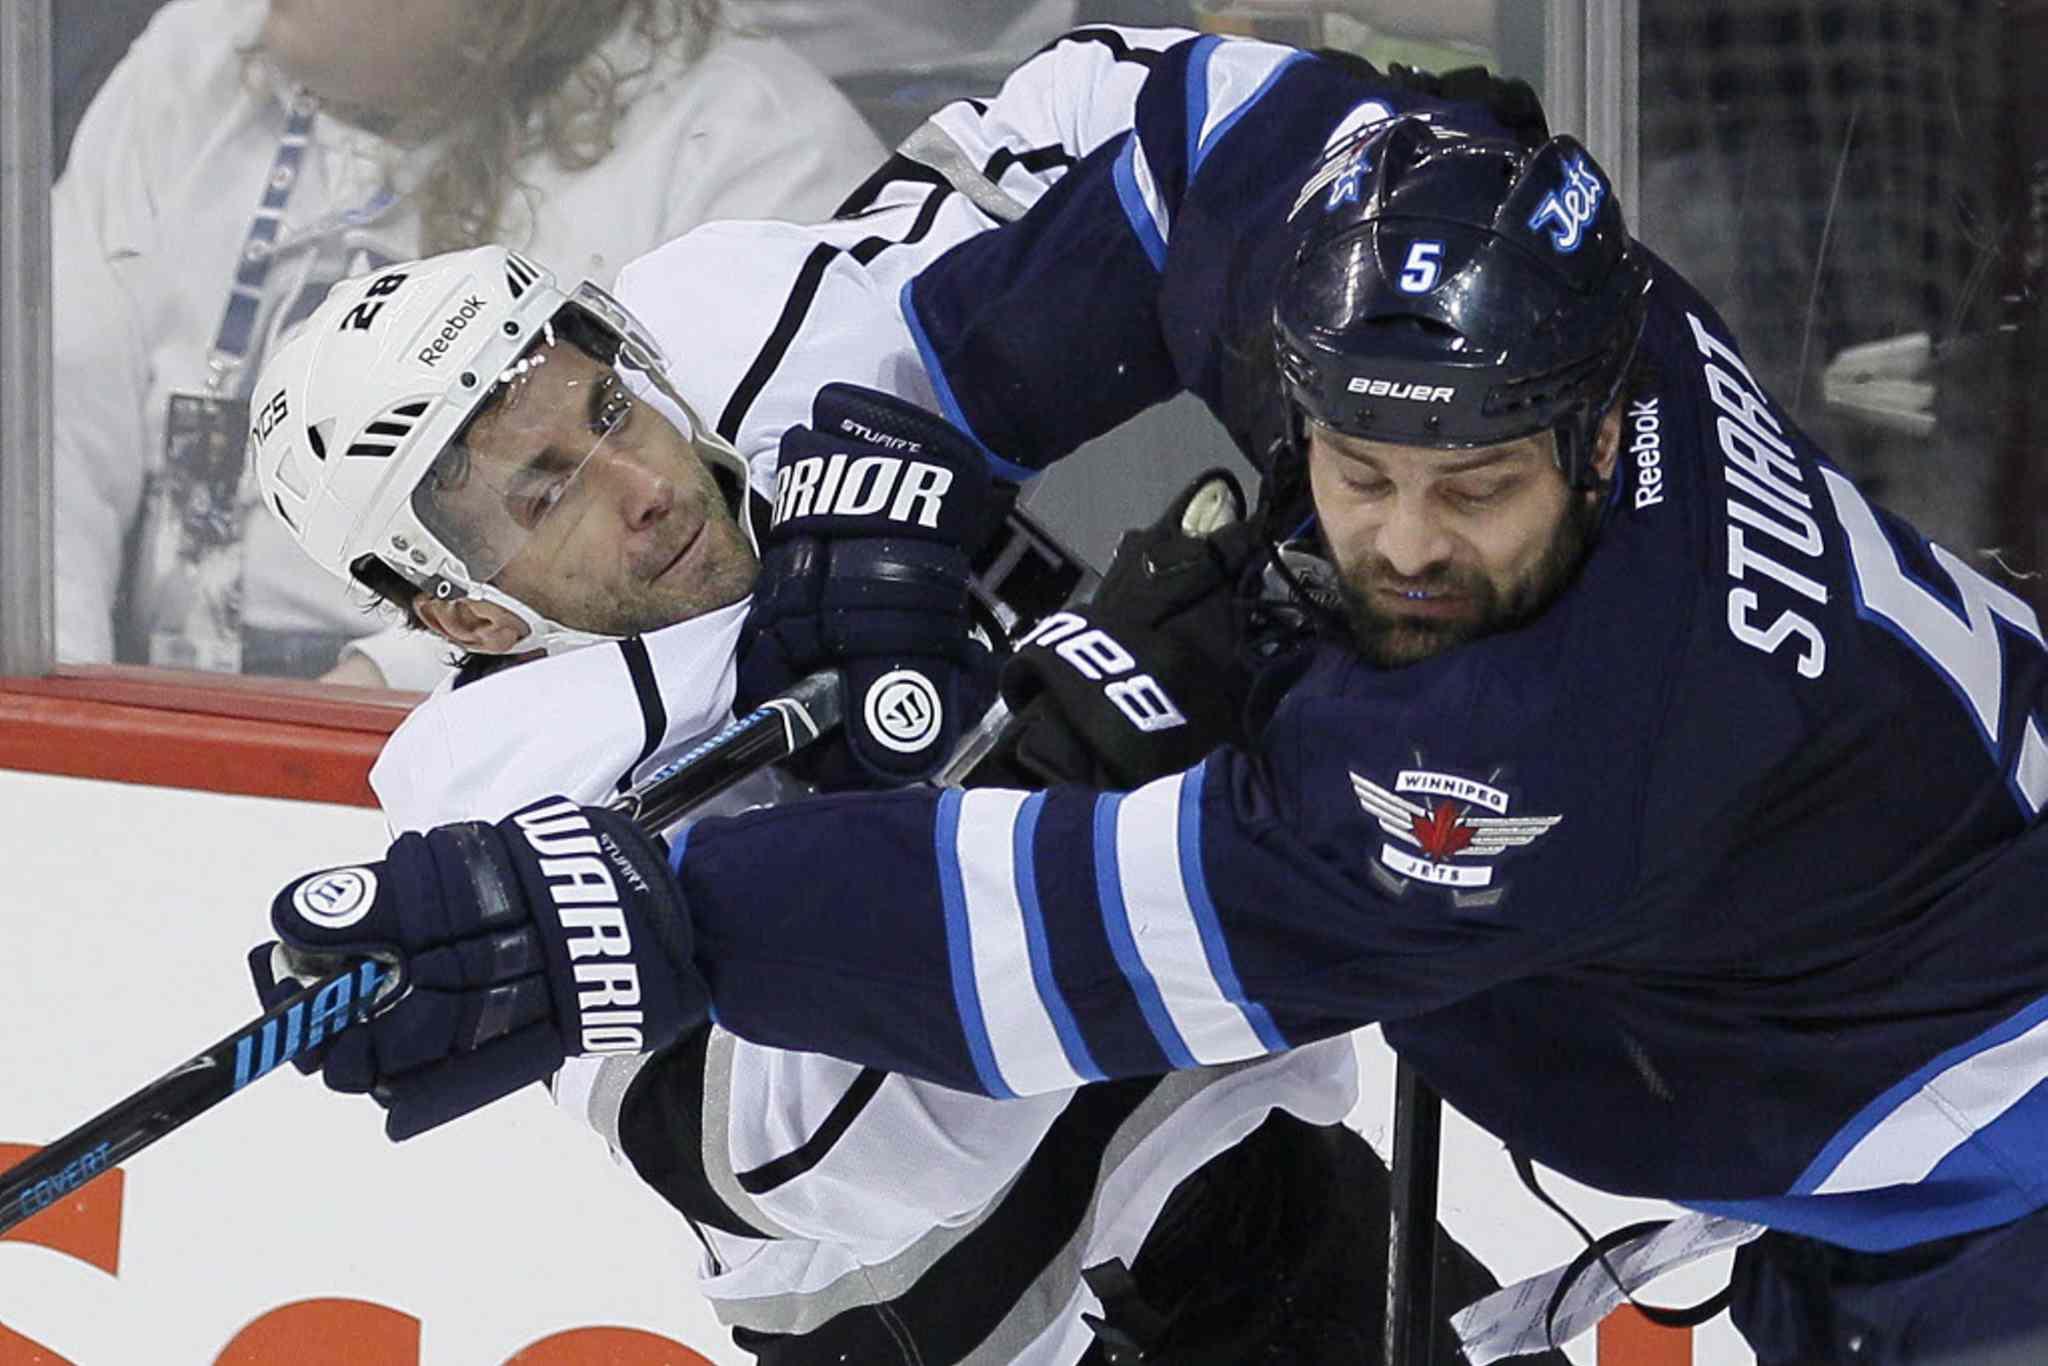 Winnipeg Jets' Mark Stuart (5) checks Los Angeles Kings' Jarret Stoll (28) during the first period in Winnipeg on Thursday.